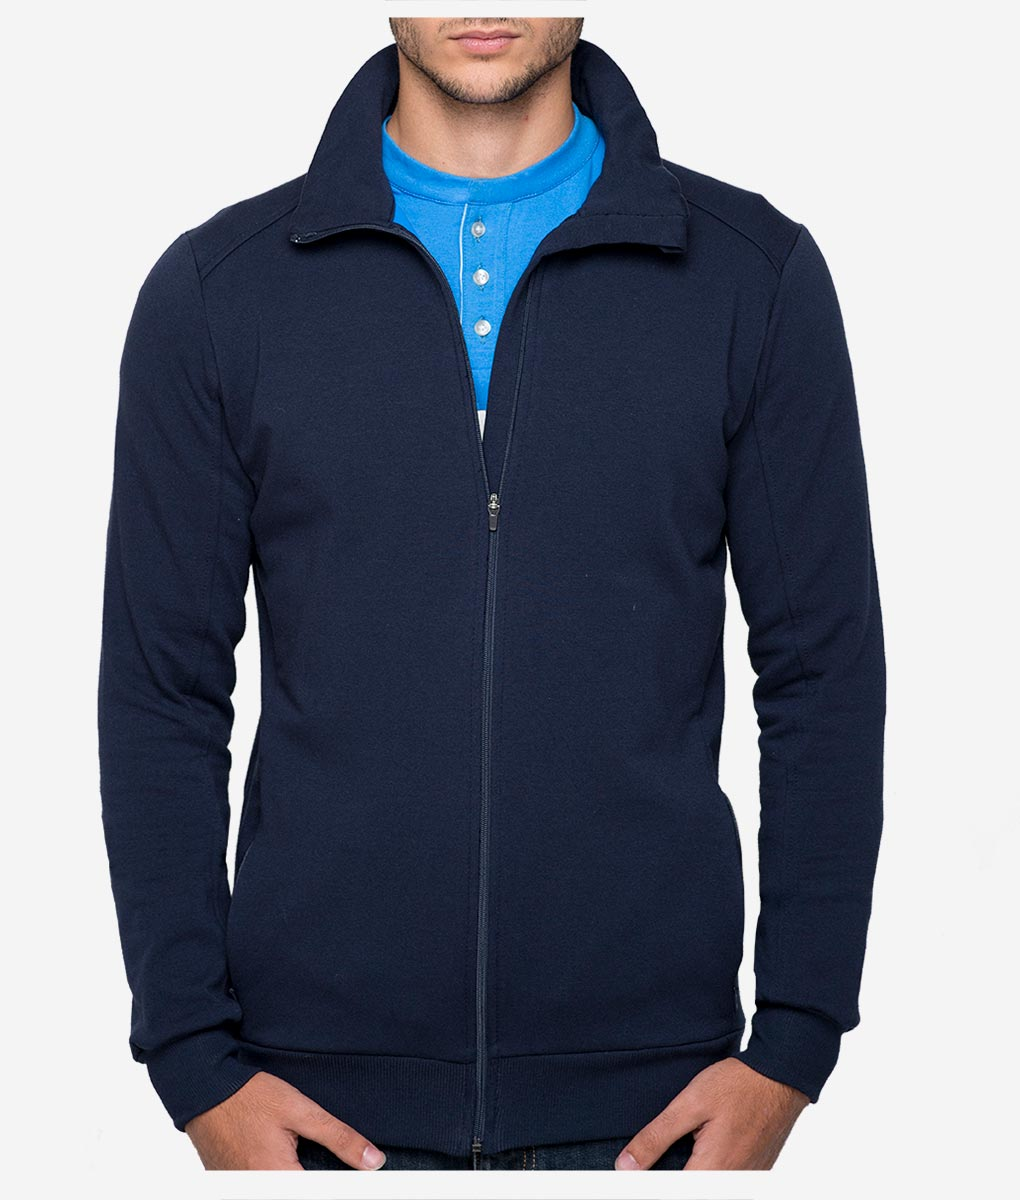 casual-cycling-blue-high-collar-jacket-front-close